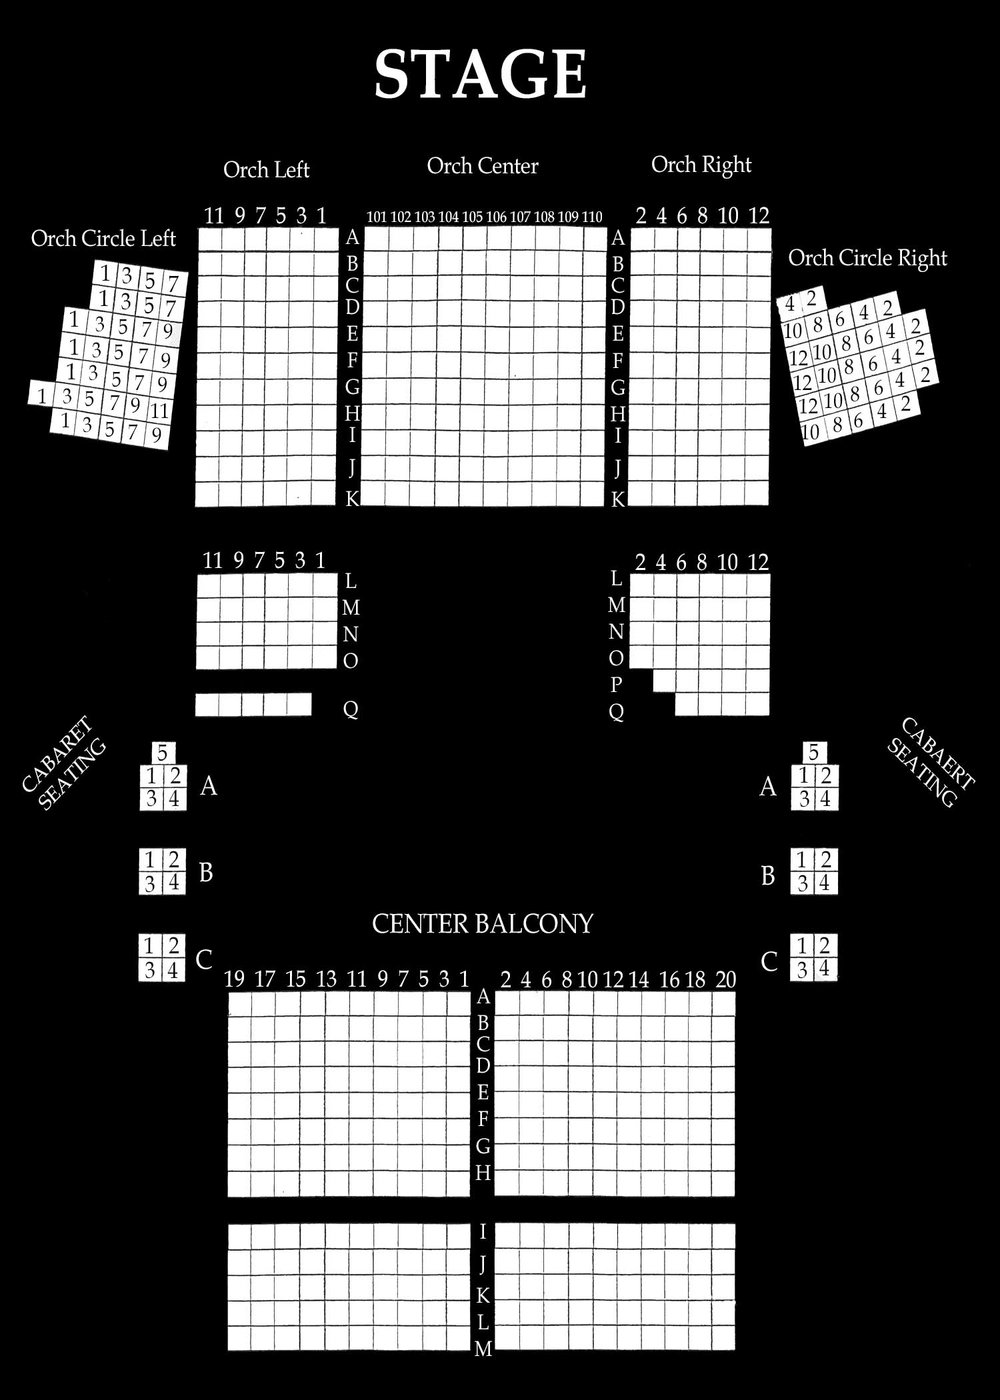 Seating ChartSMALL.jpg